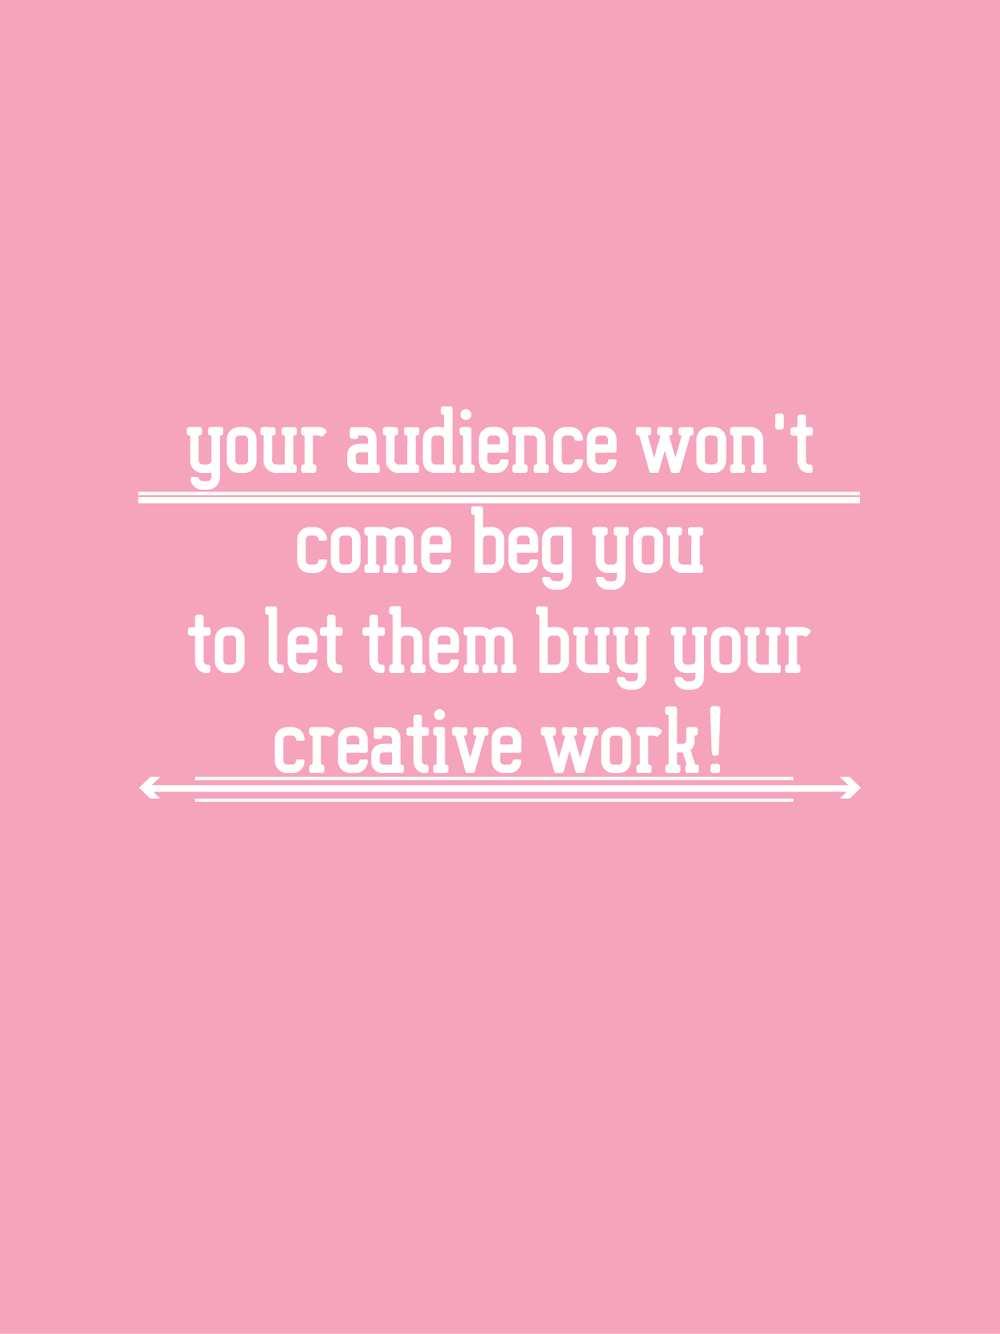 your audience won't come beg you to let them buy your creative work!-13.png